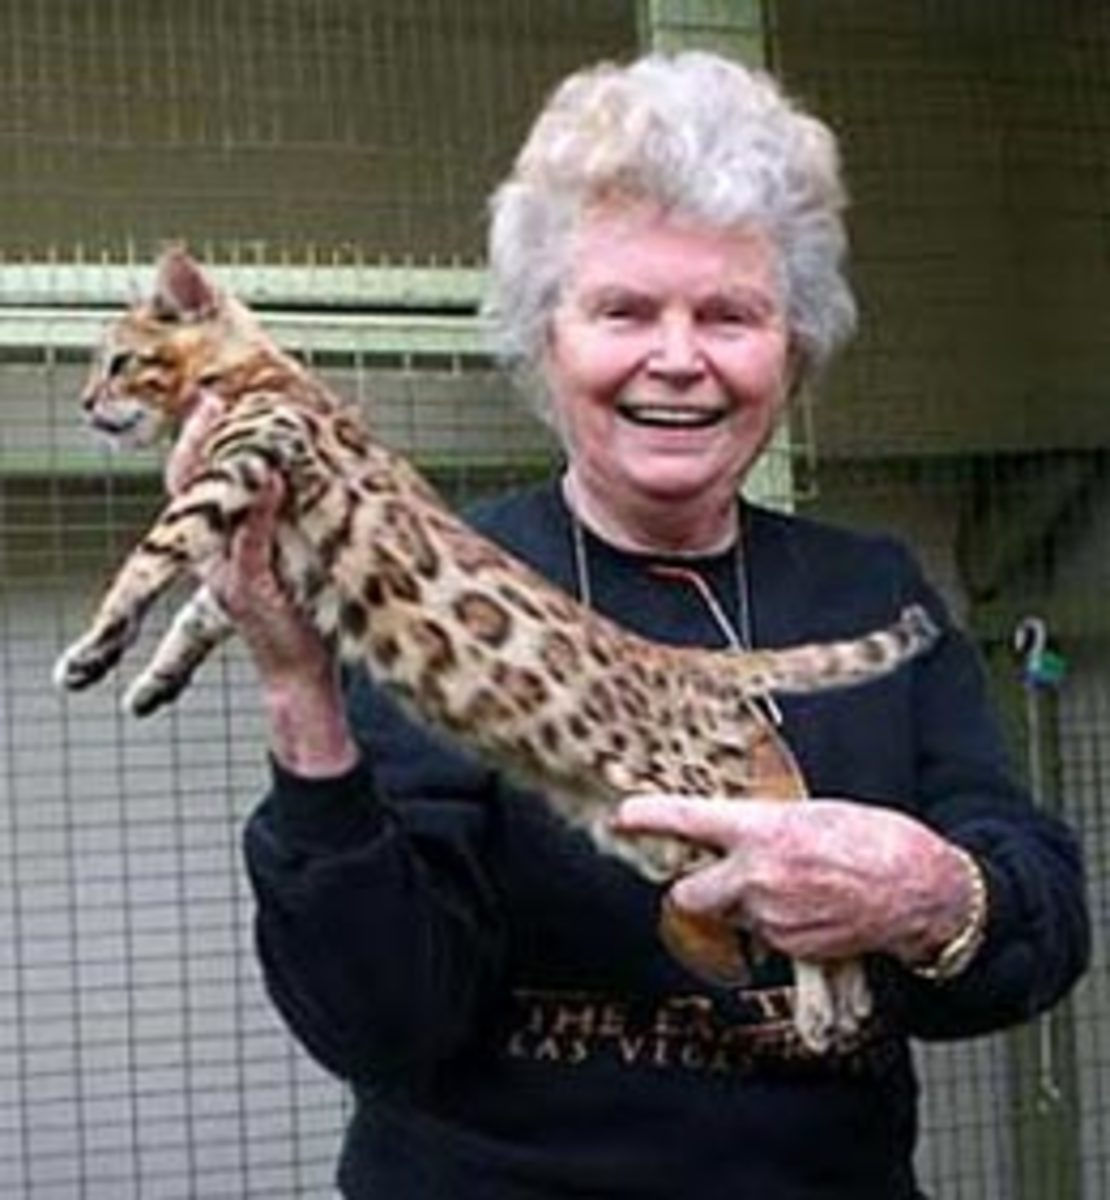 Jean Sugden Mill holding a Bengal cat in an undated photo.